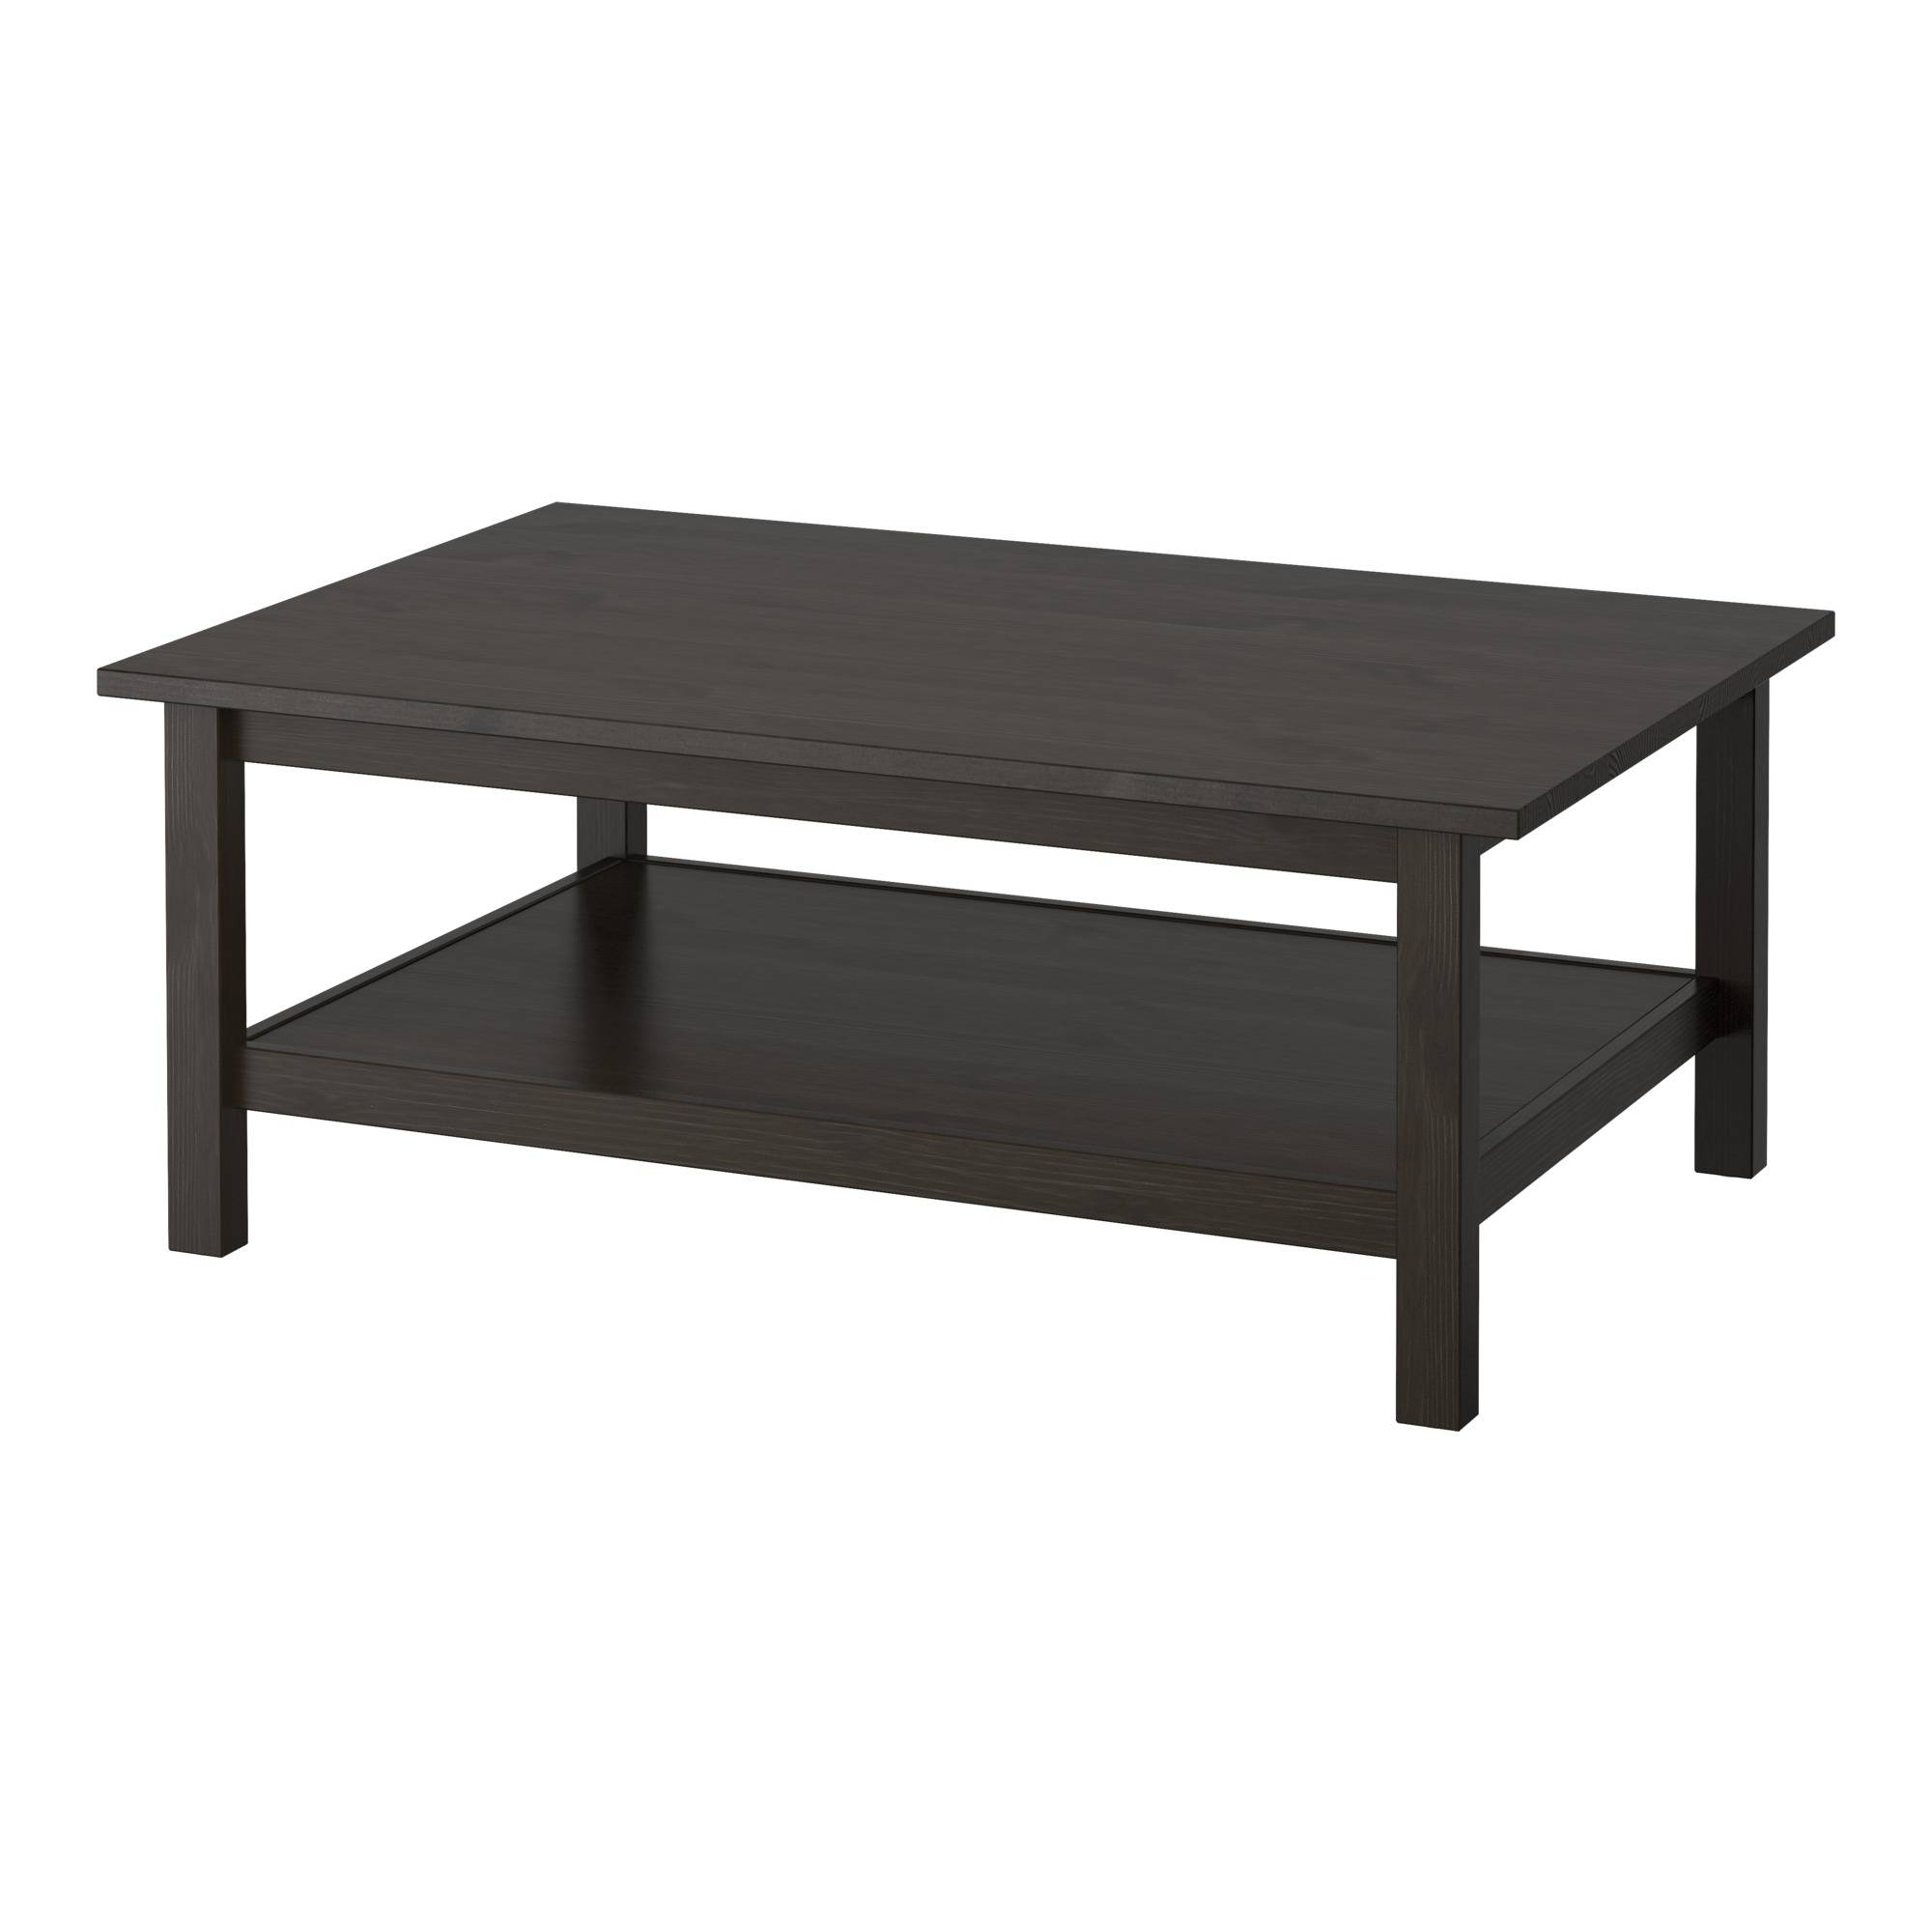 Coffee Tables: Amusing Coffee Tables Ikea Design Ideas Black with Black Wood Coffee Tables (Image 19 of 30)